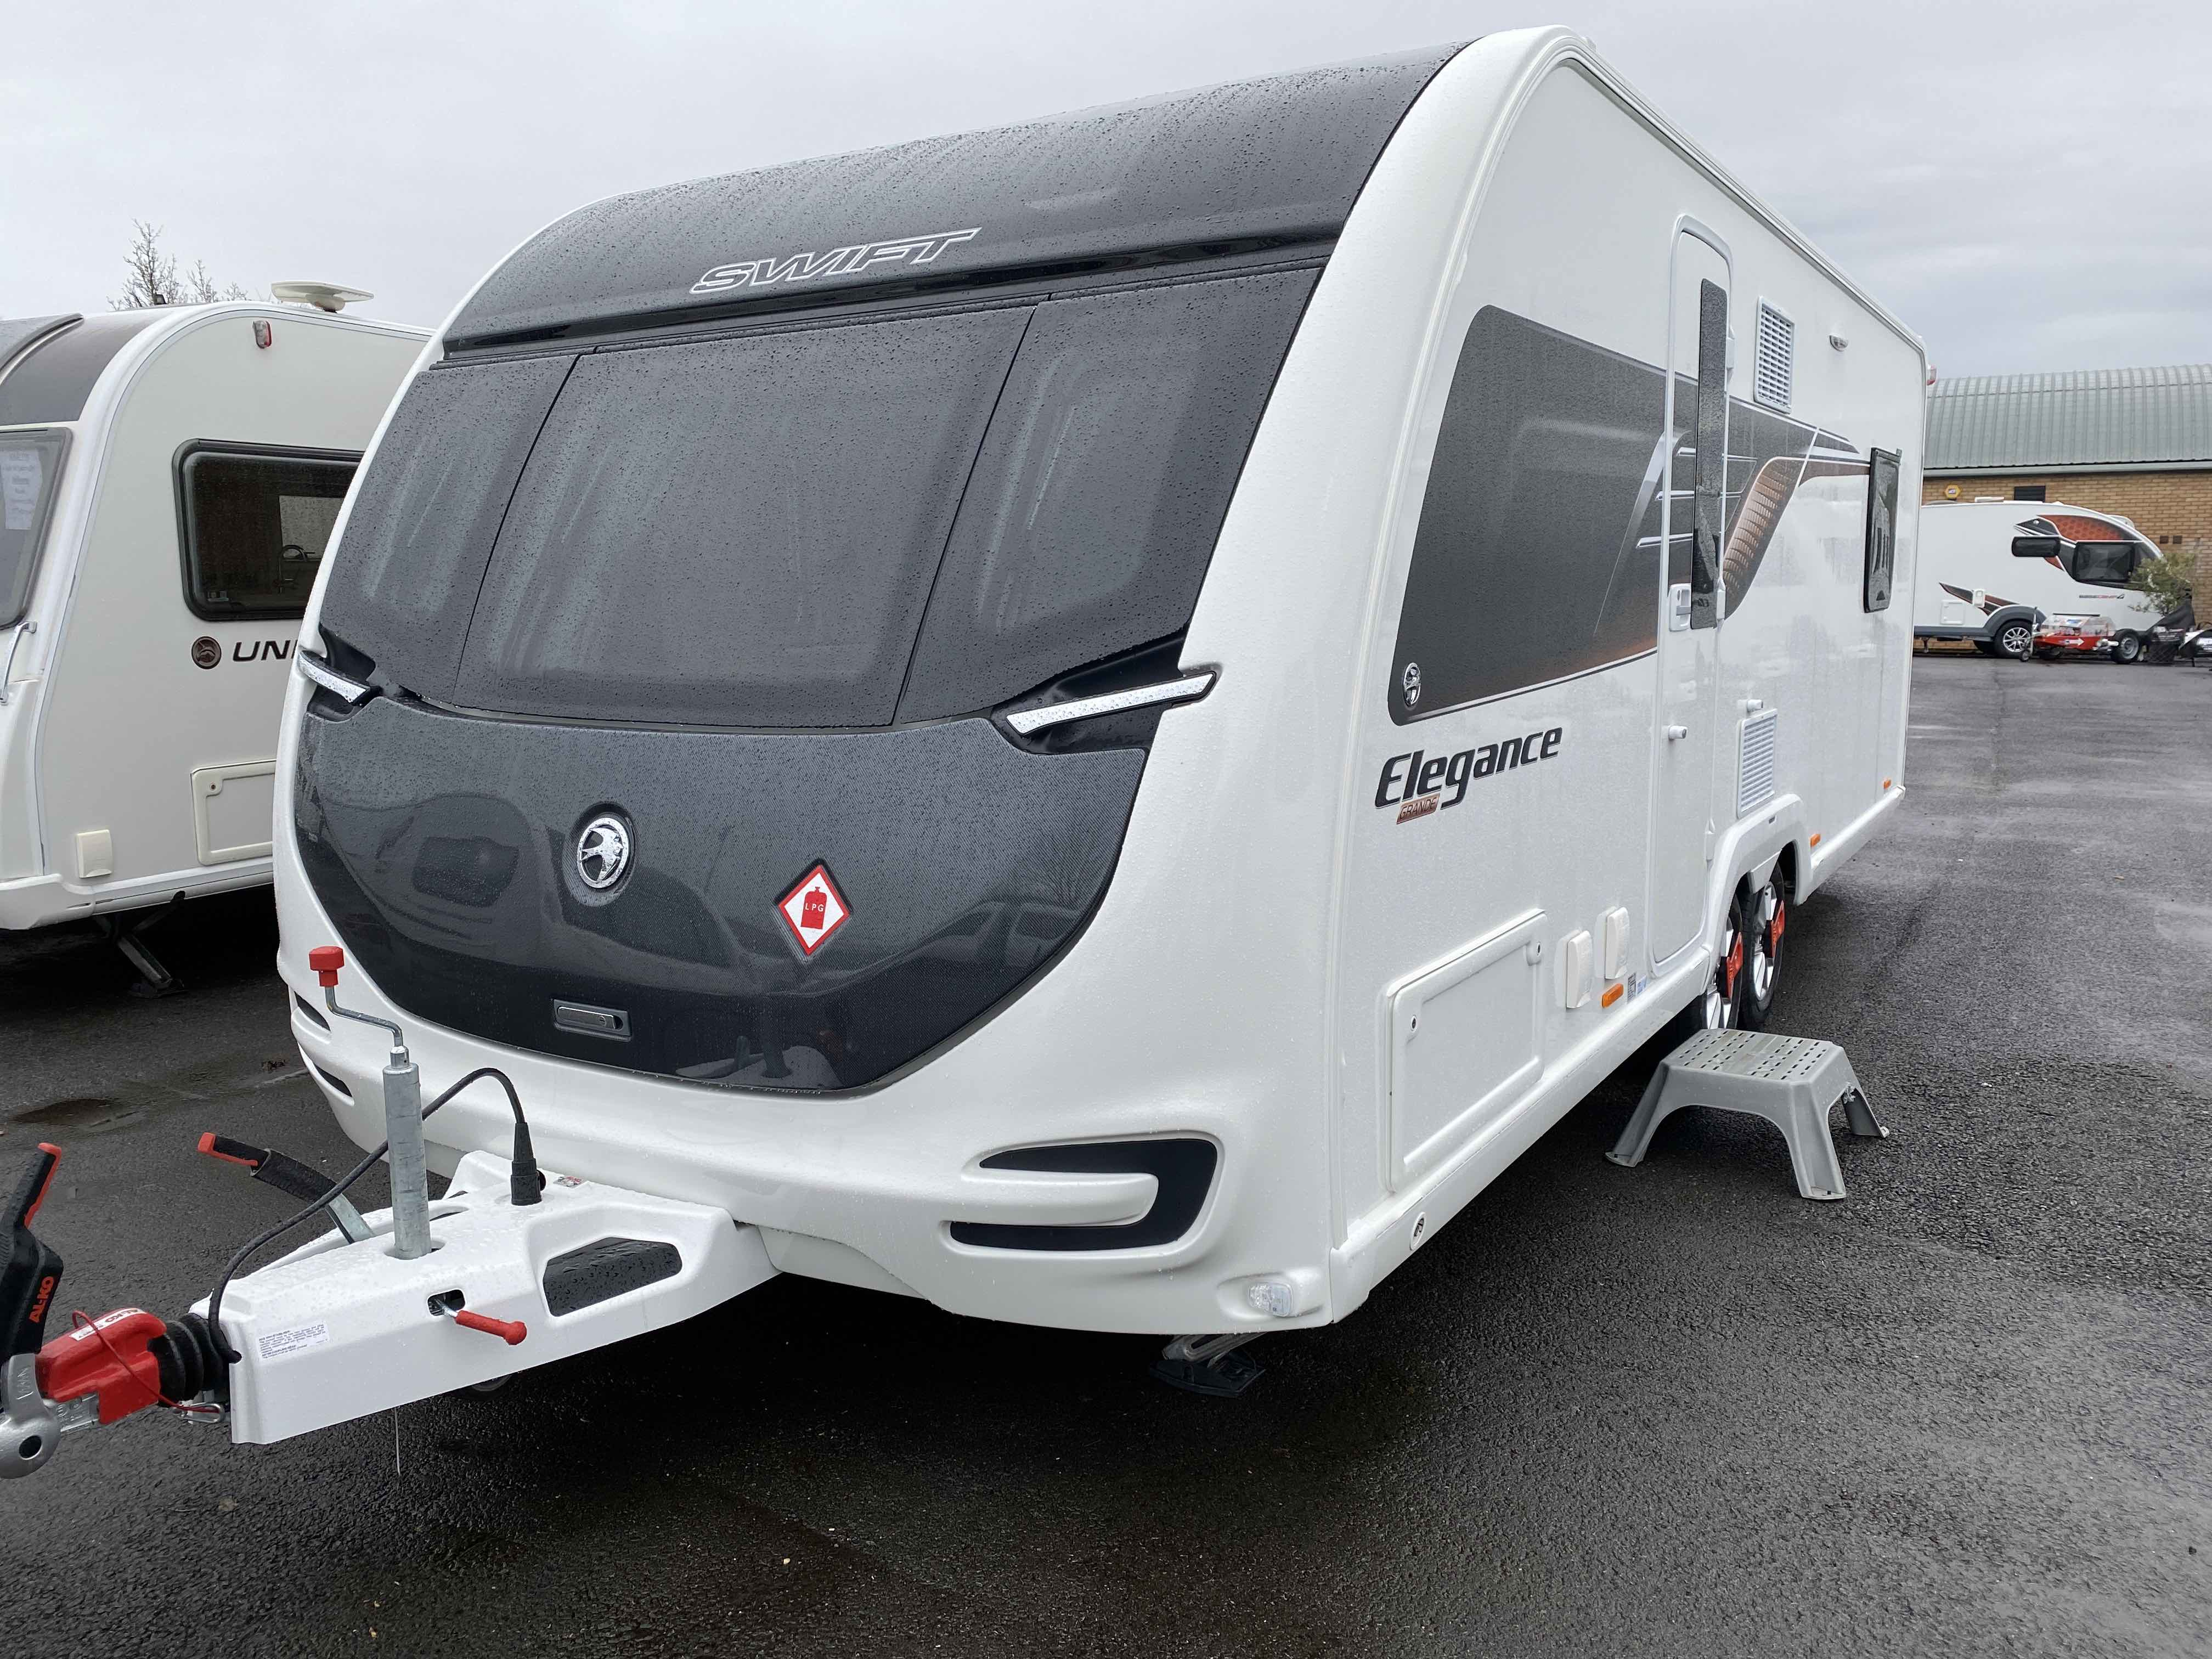 2021 Swift Elegance Grande 850 – *On-Site Available to View*